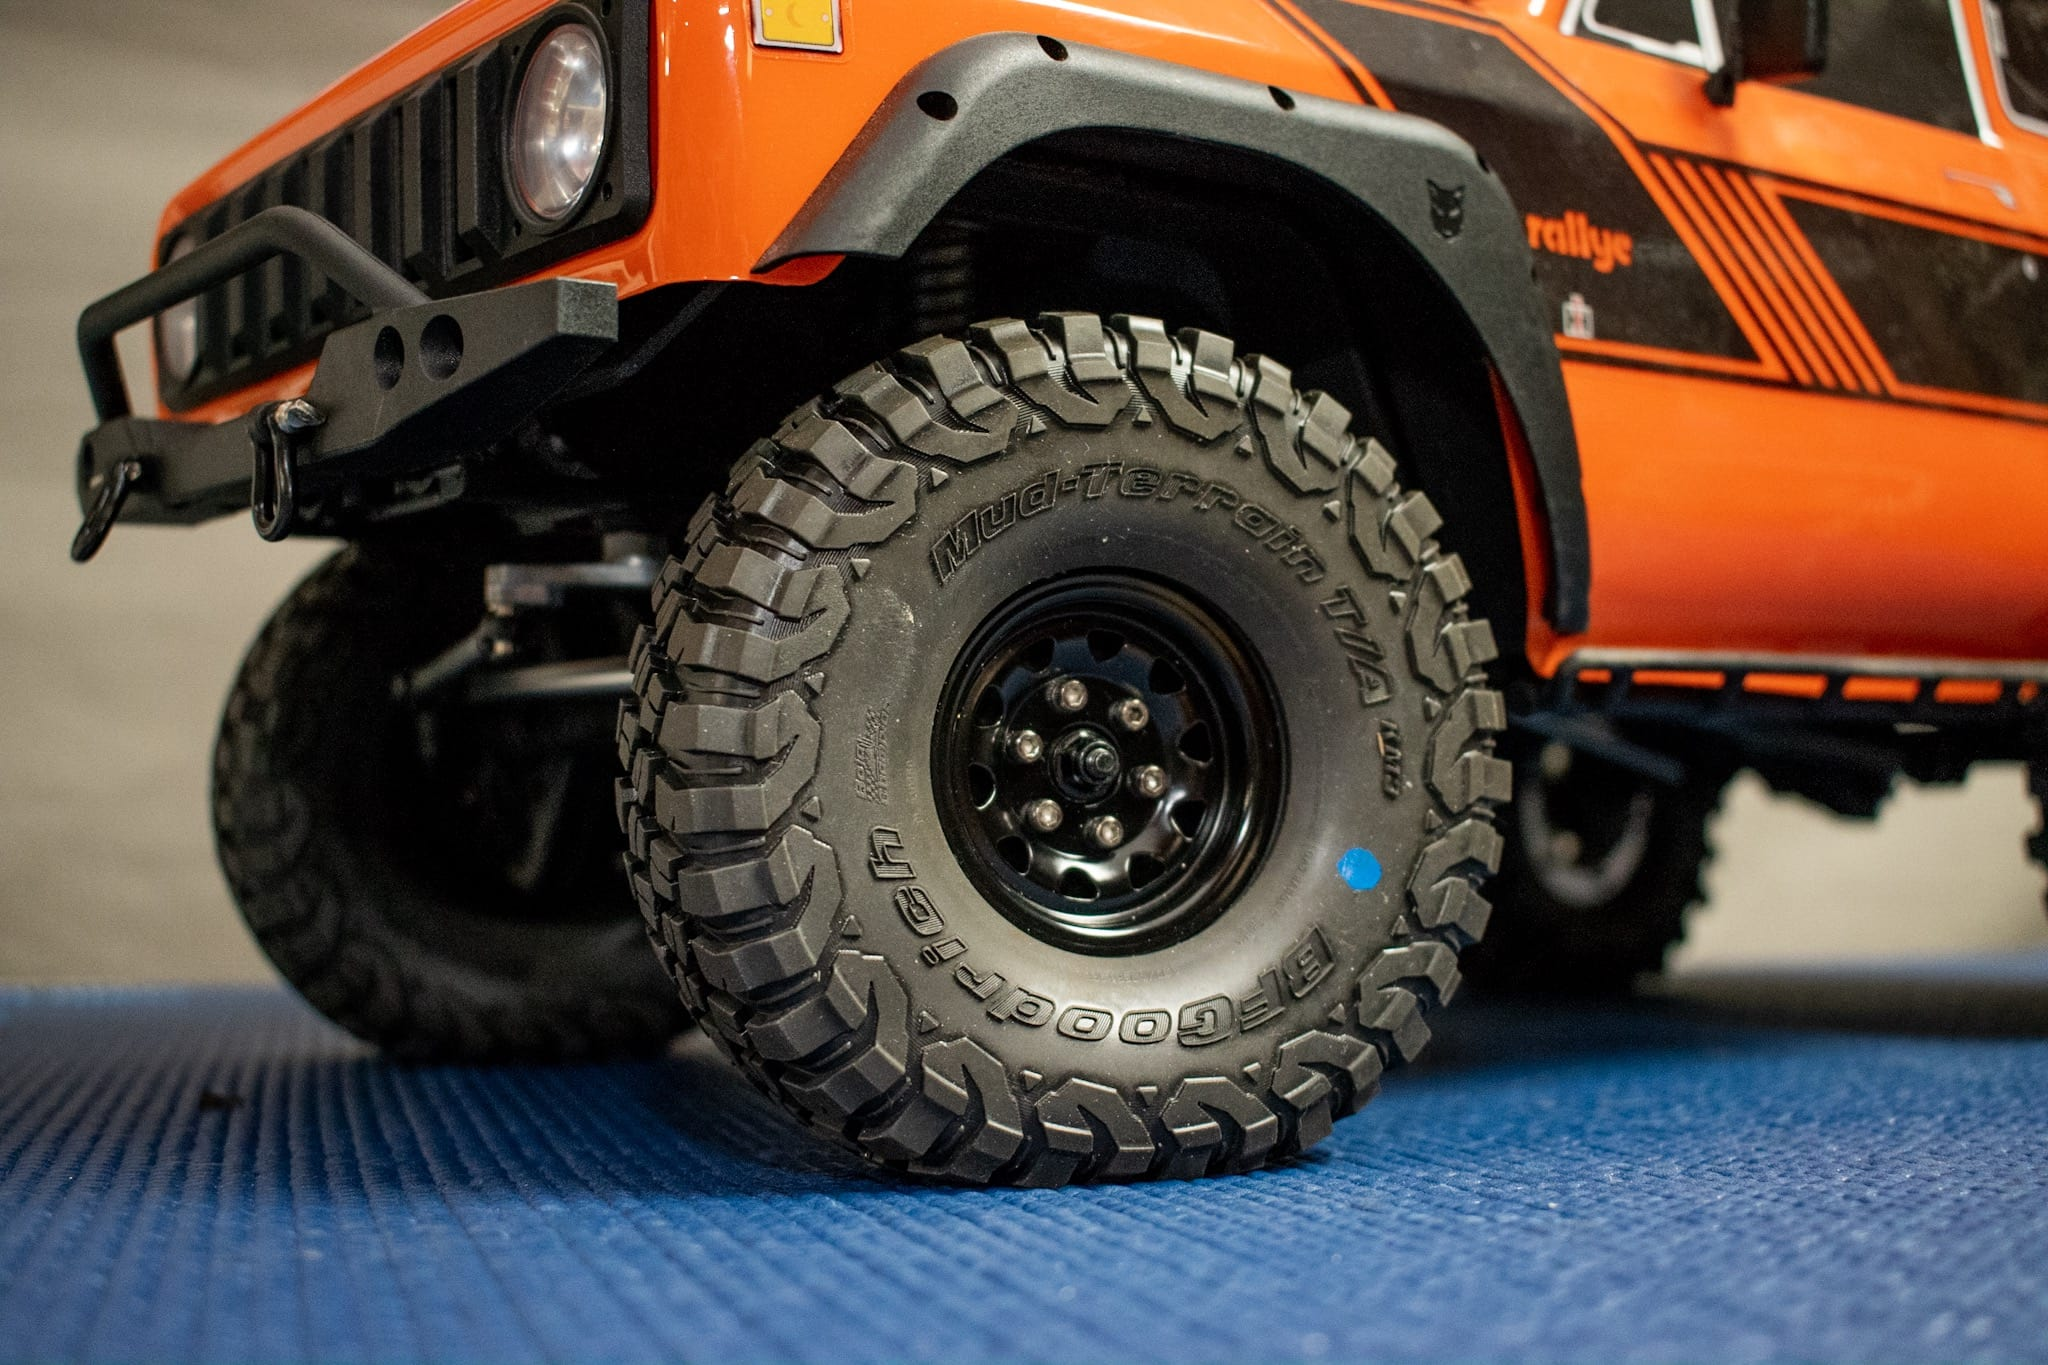 Hands-on with Pro-Line's BFGoodrich KM3 1.9″ Predator Rock Terrain Tires